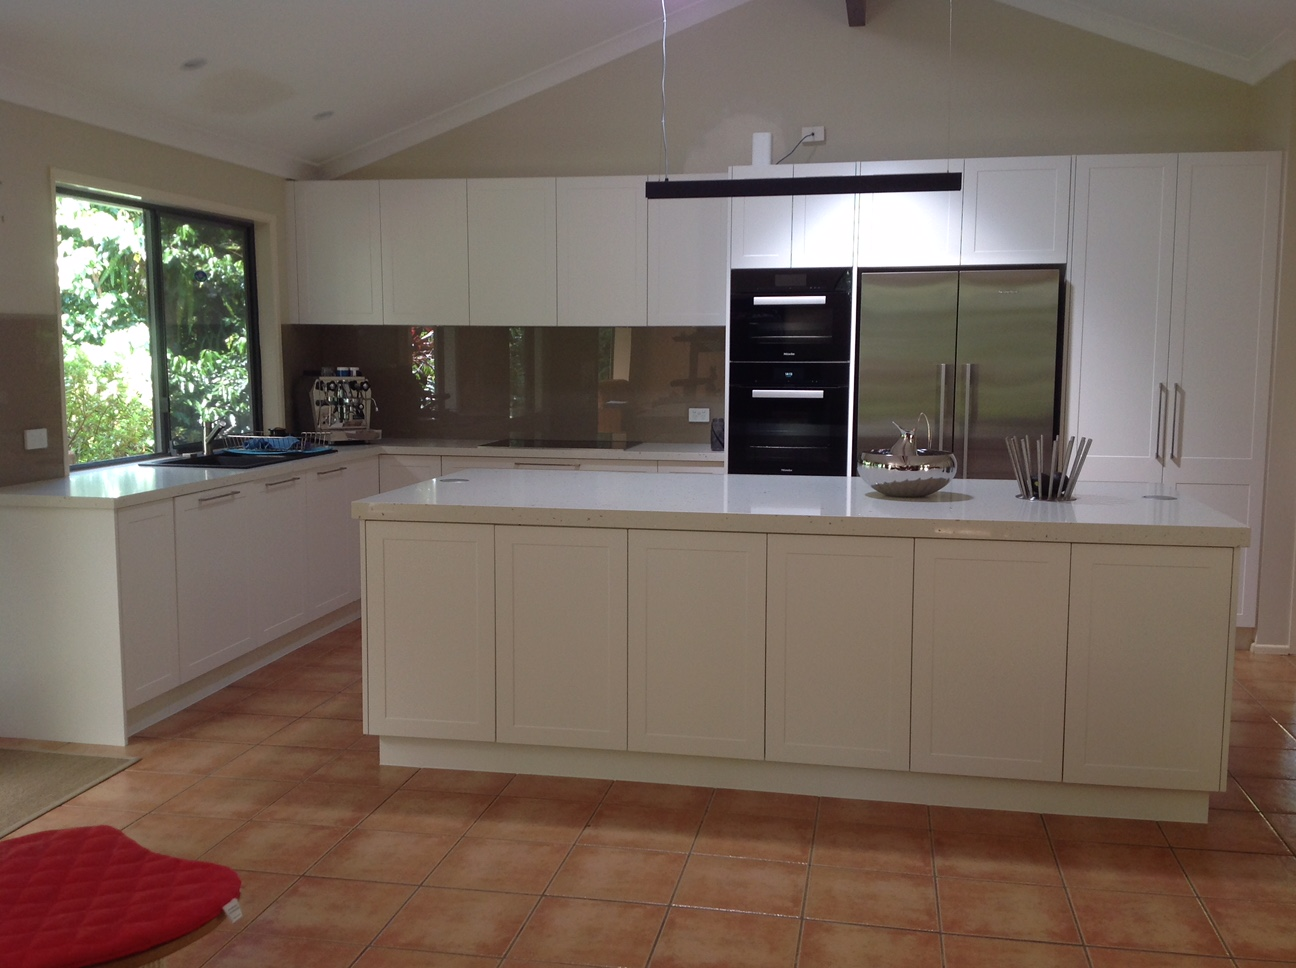 Kitchen renovations - Gold Coast - Surfers Paradise - (before - after)